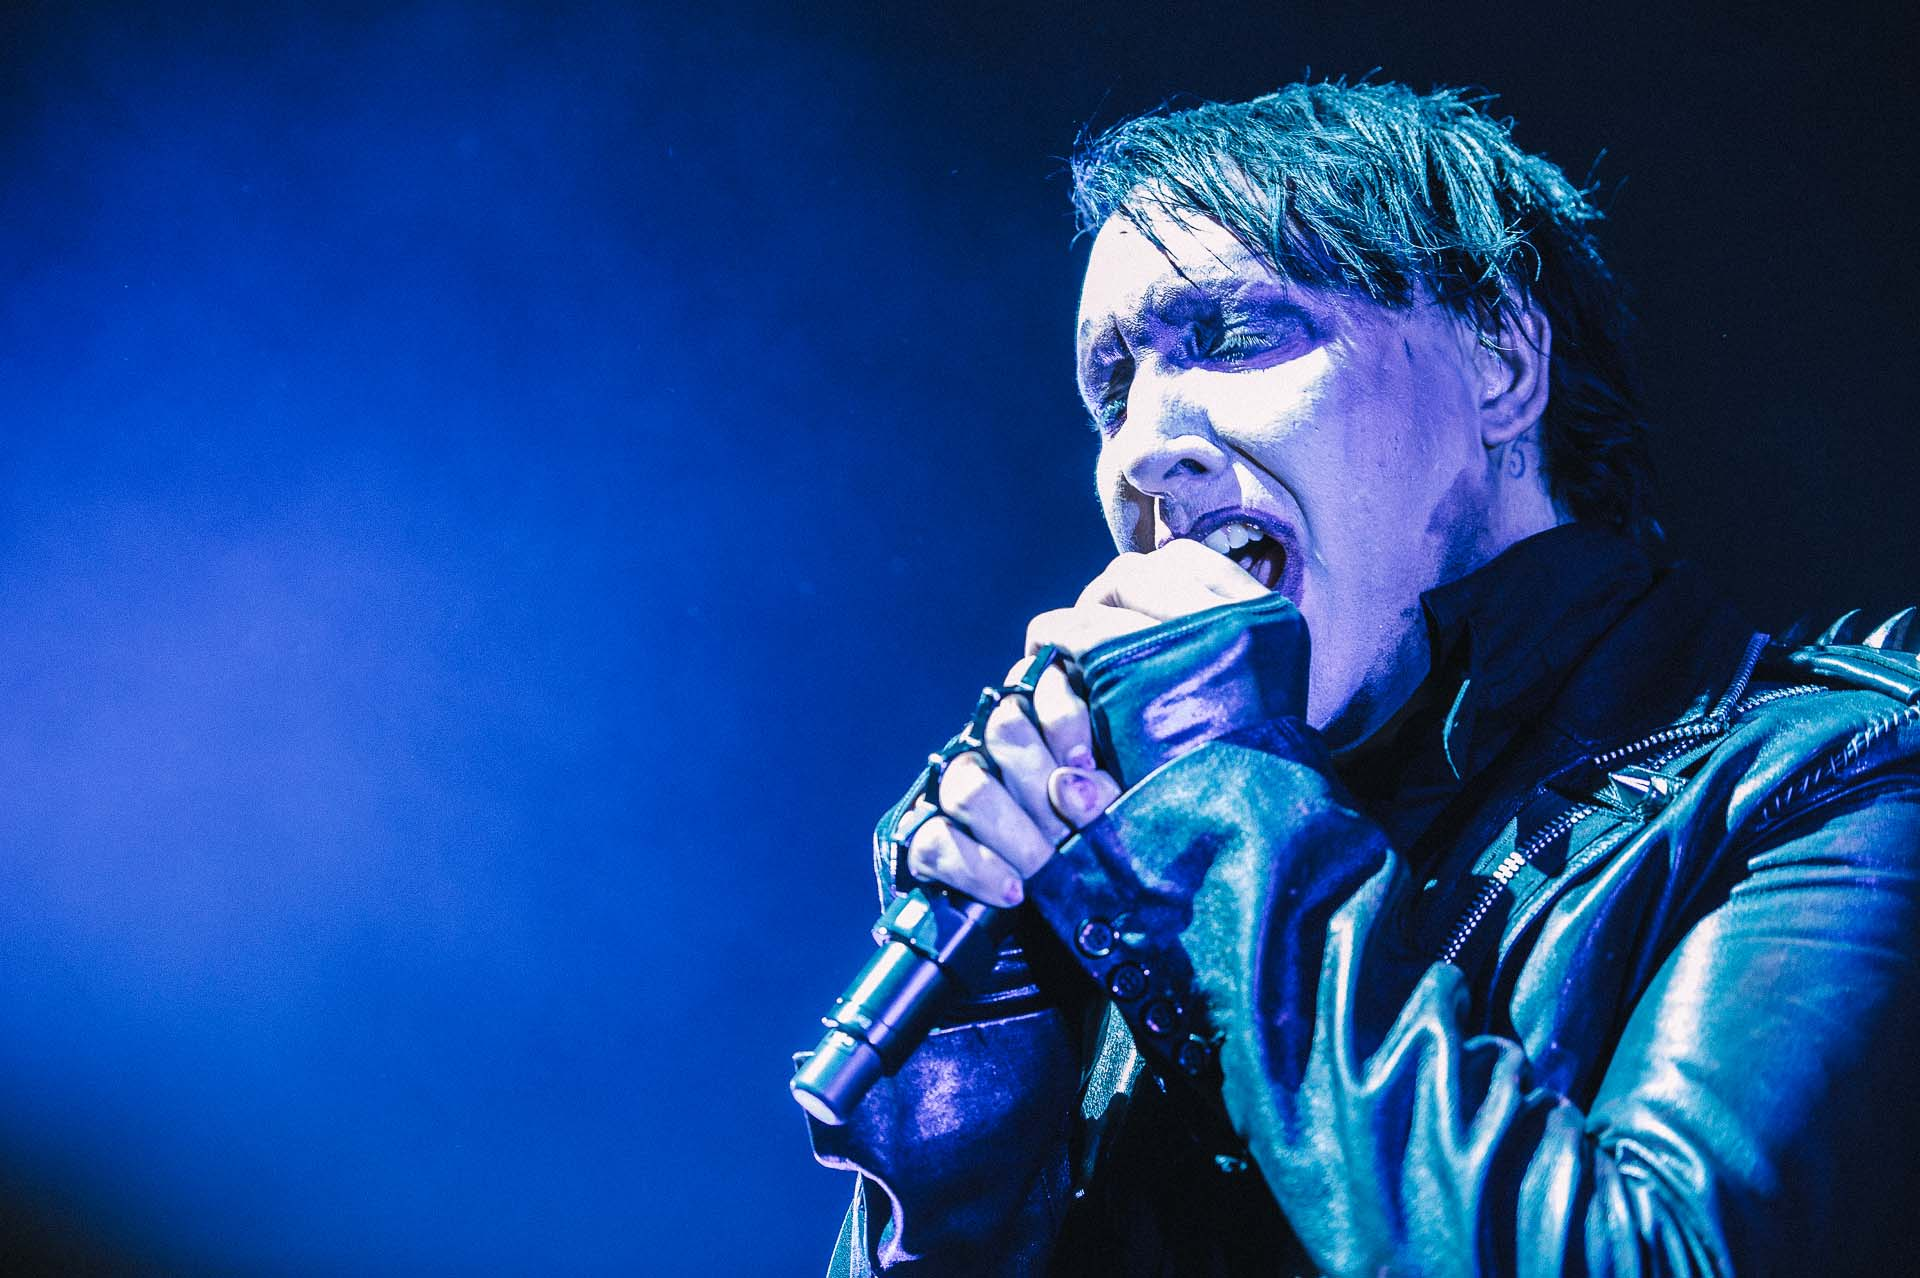 marilyn_manson_live_egyptian_room_indianapolis_2013-24